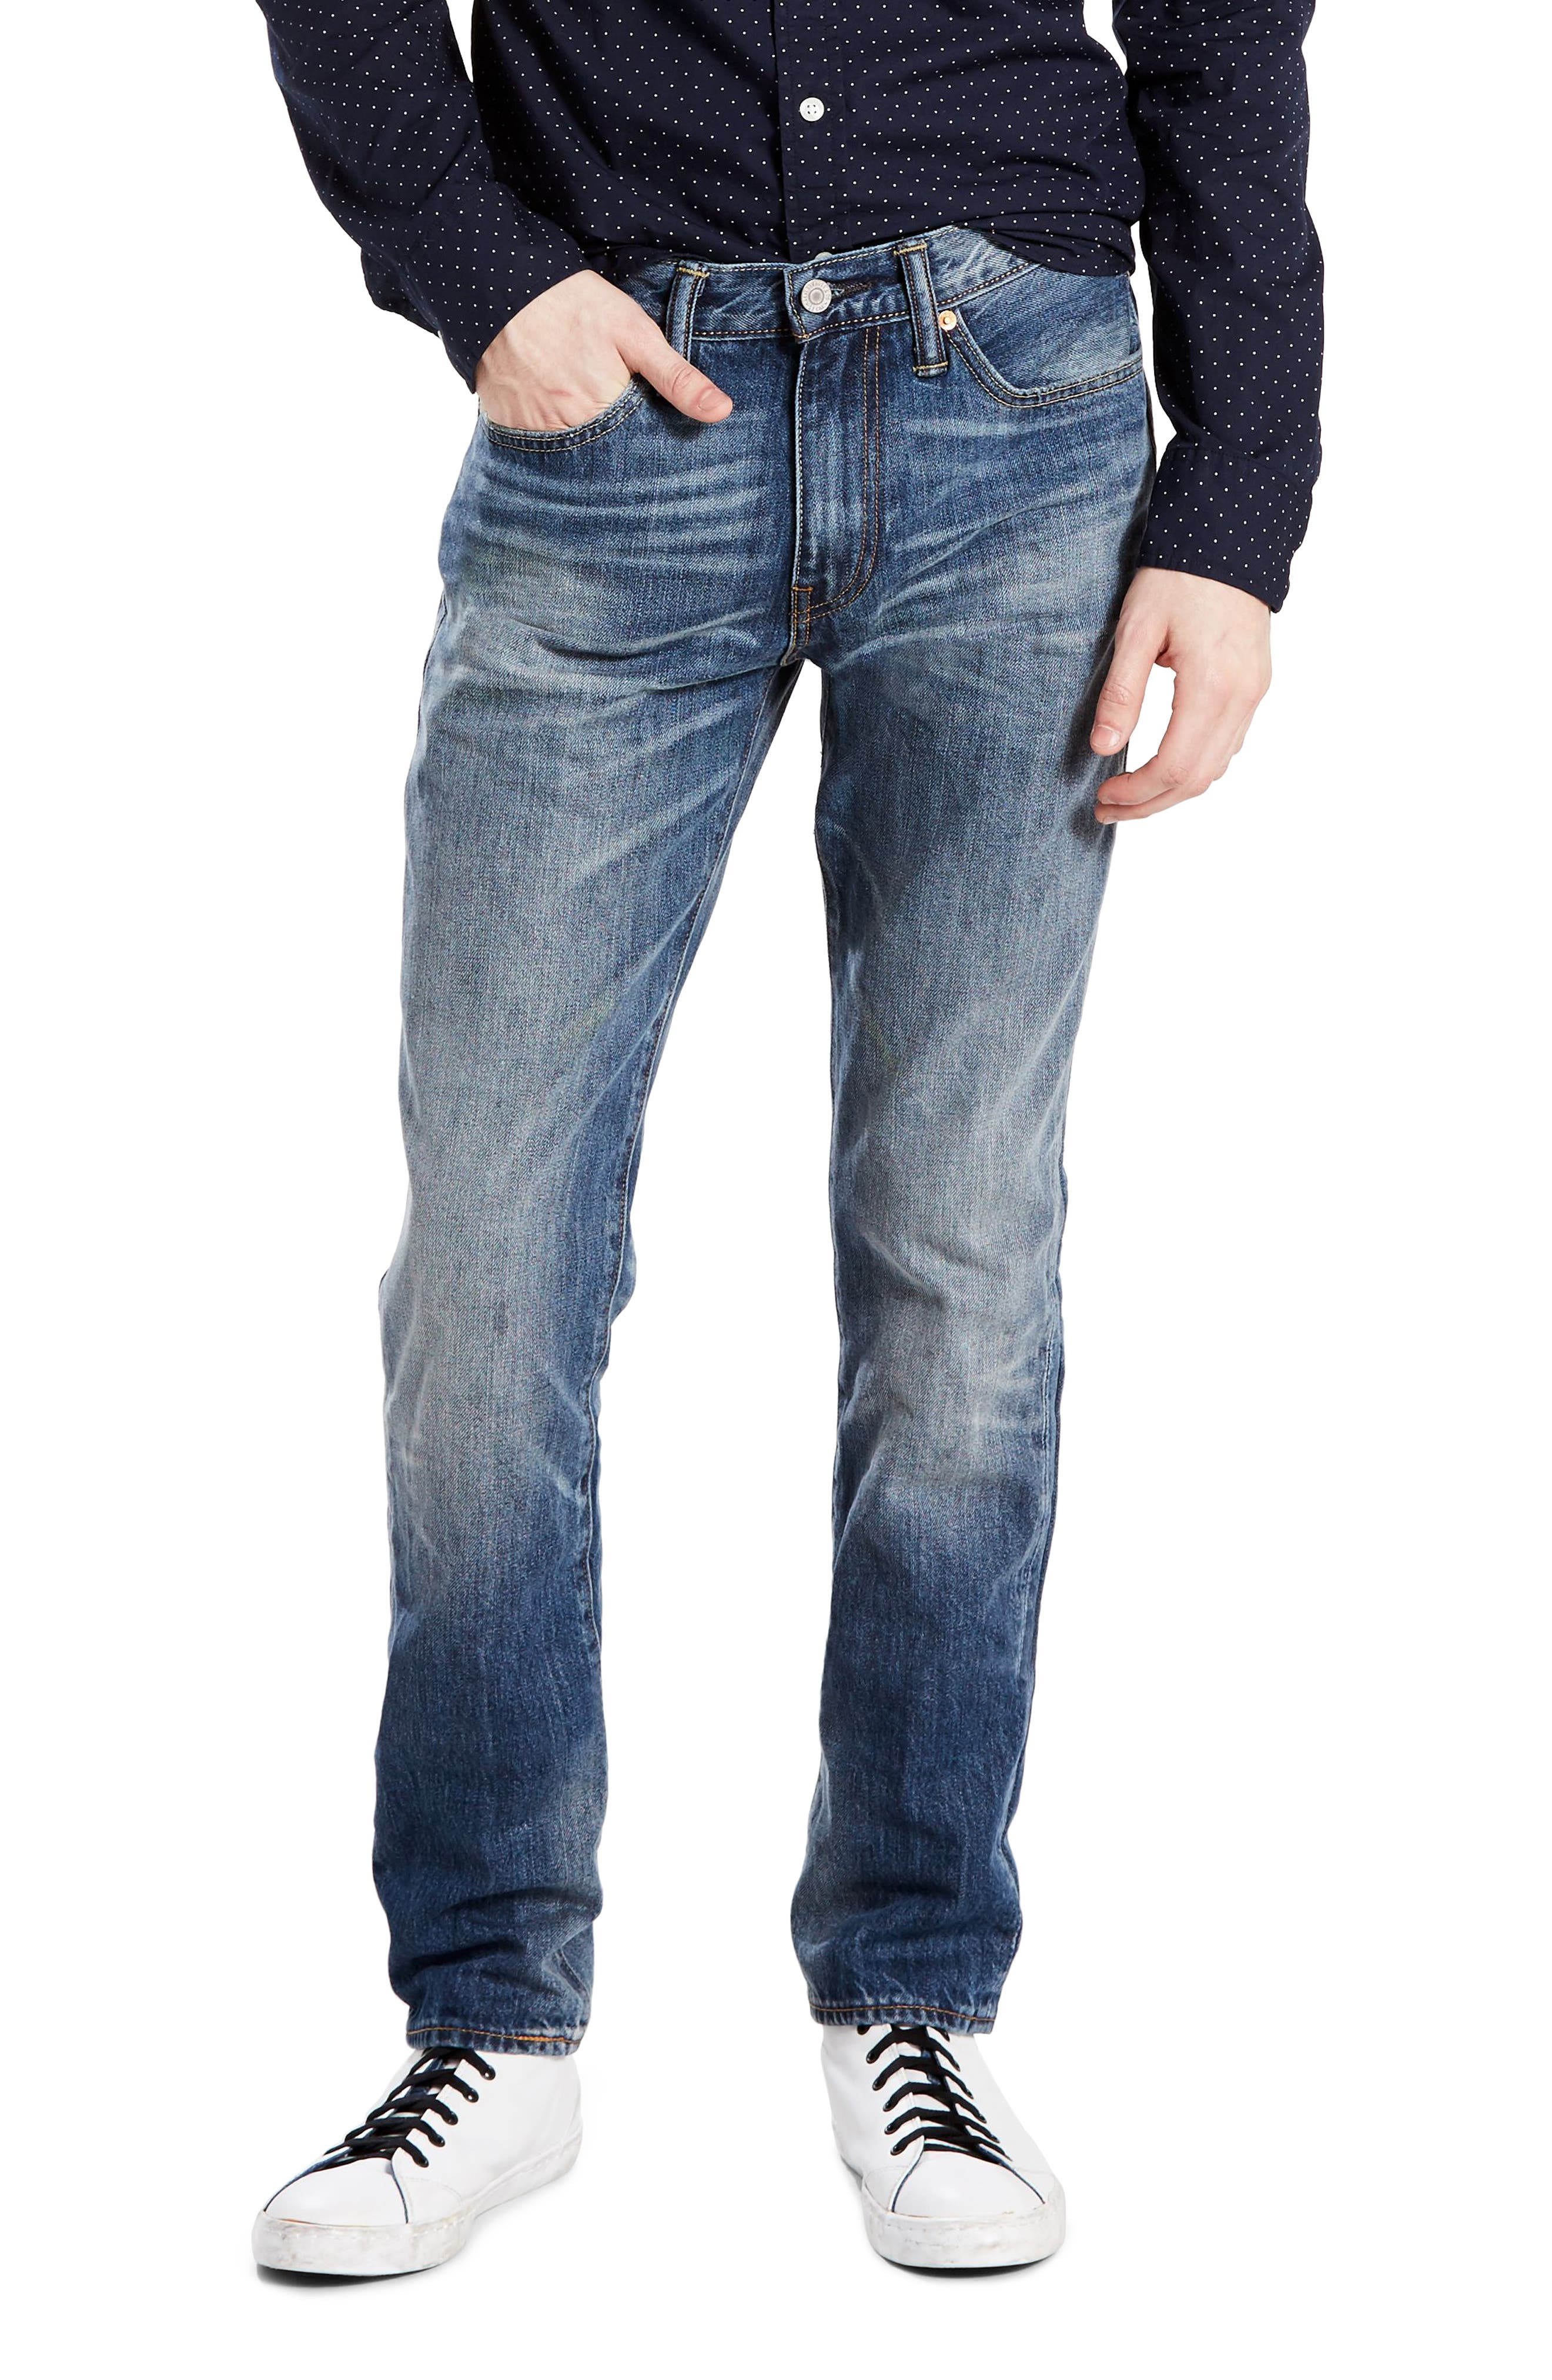 Alternate Image 1 Selected - Levi's® 511™ Slim Fit Jeans (The Cavern)